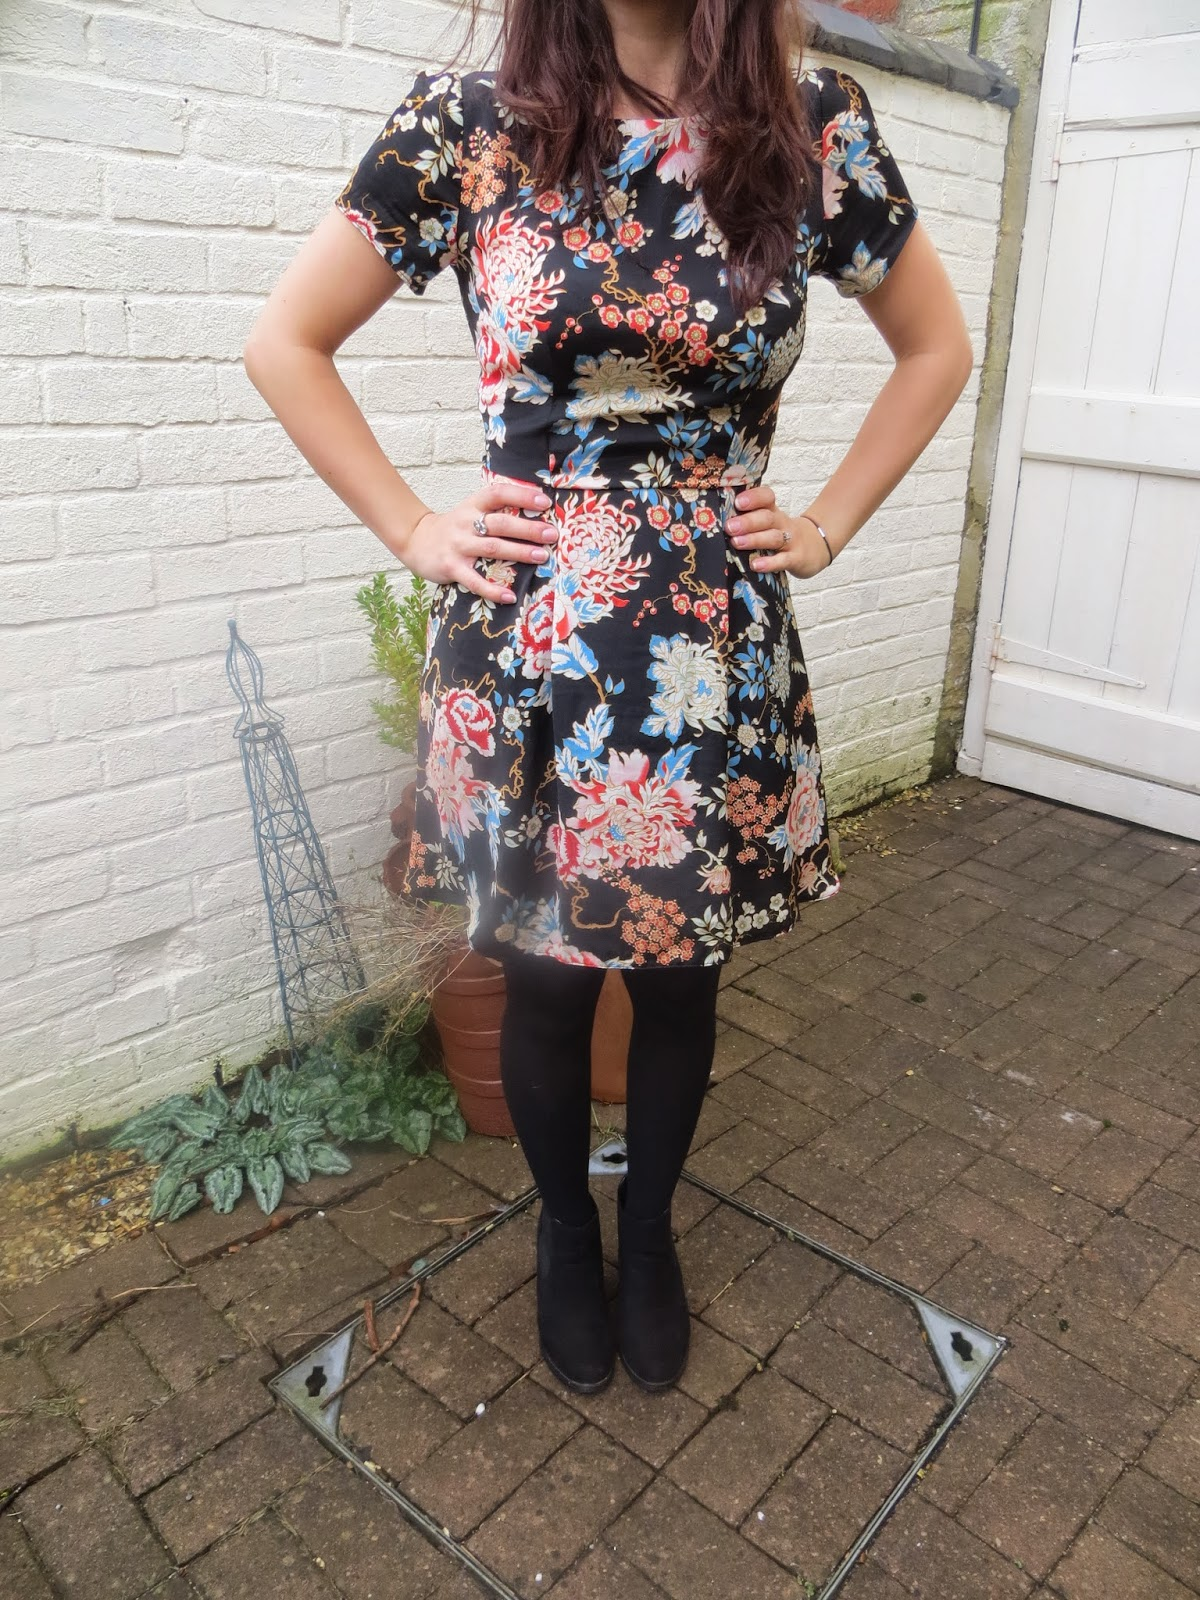 OOTD, Fashion, In Love With Fashion, Floral, Dress, New Look, Ebay, Hat, Shoes, Heels, Blogger